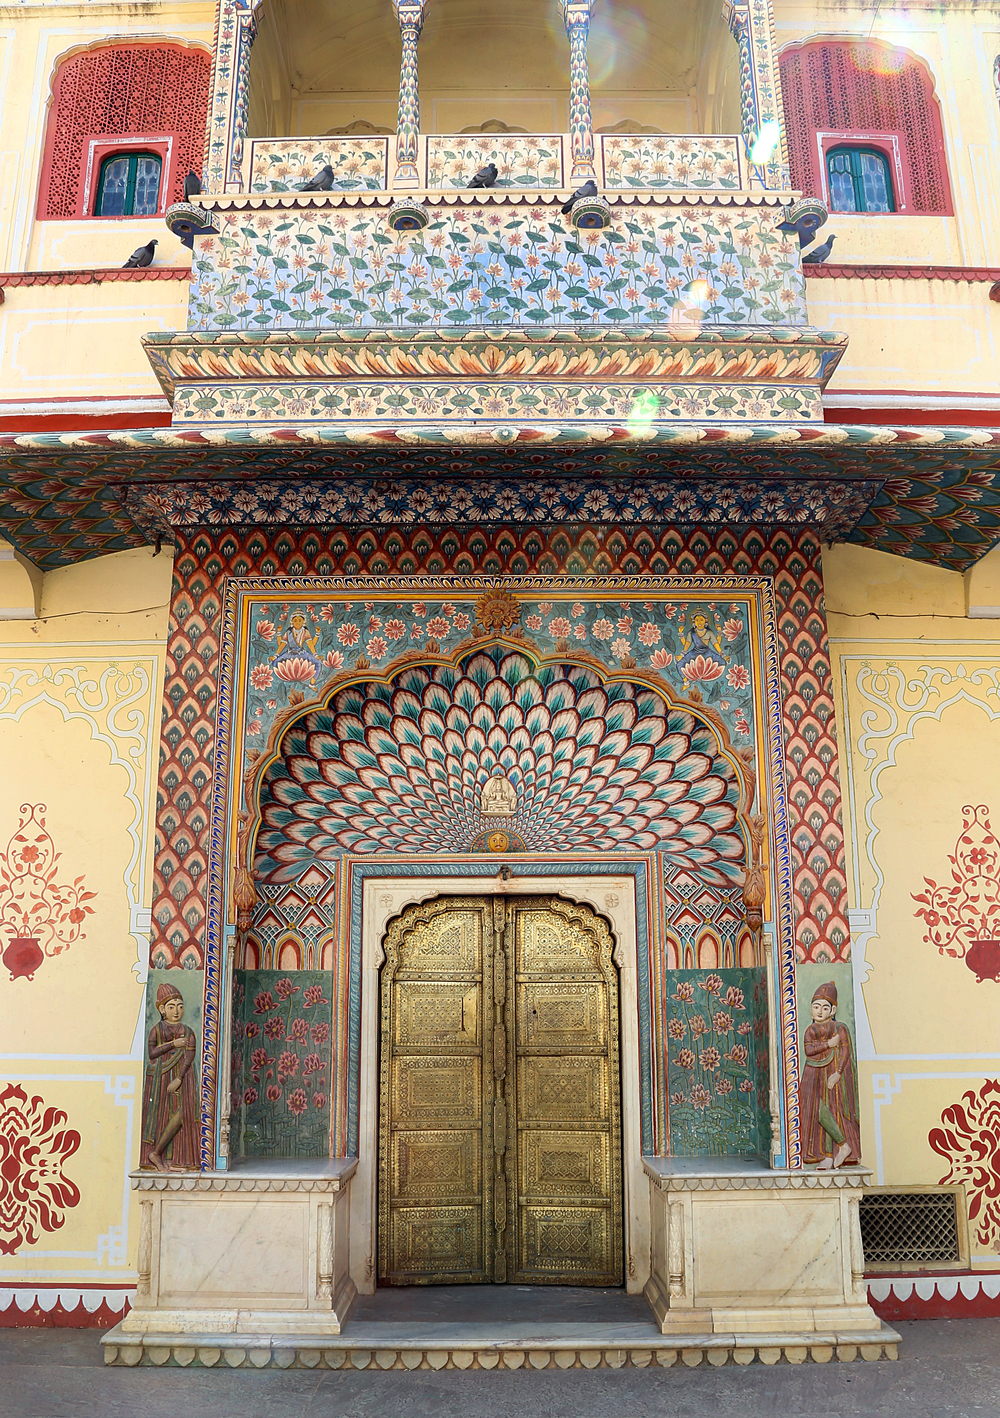 Palace doorway - Jaipur, India